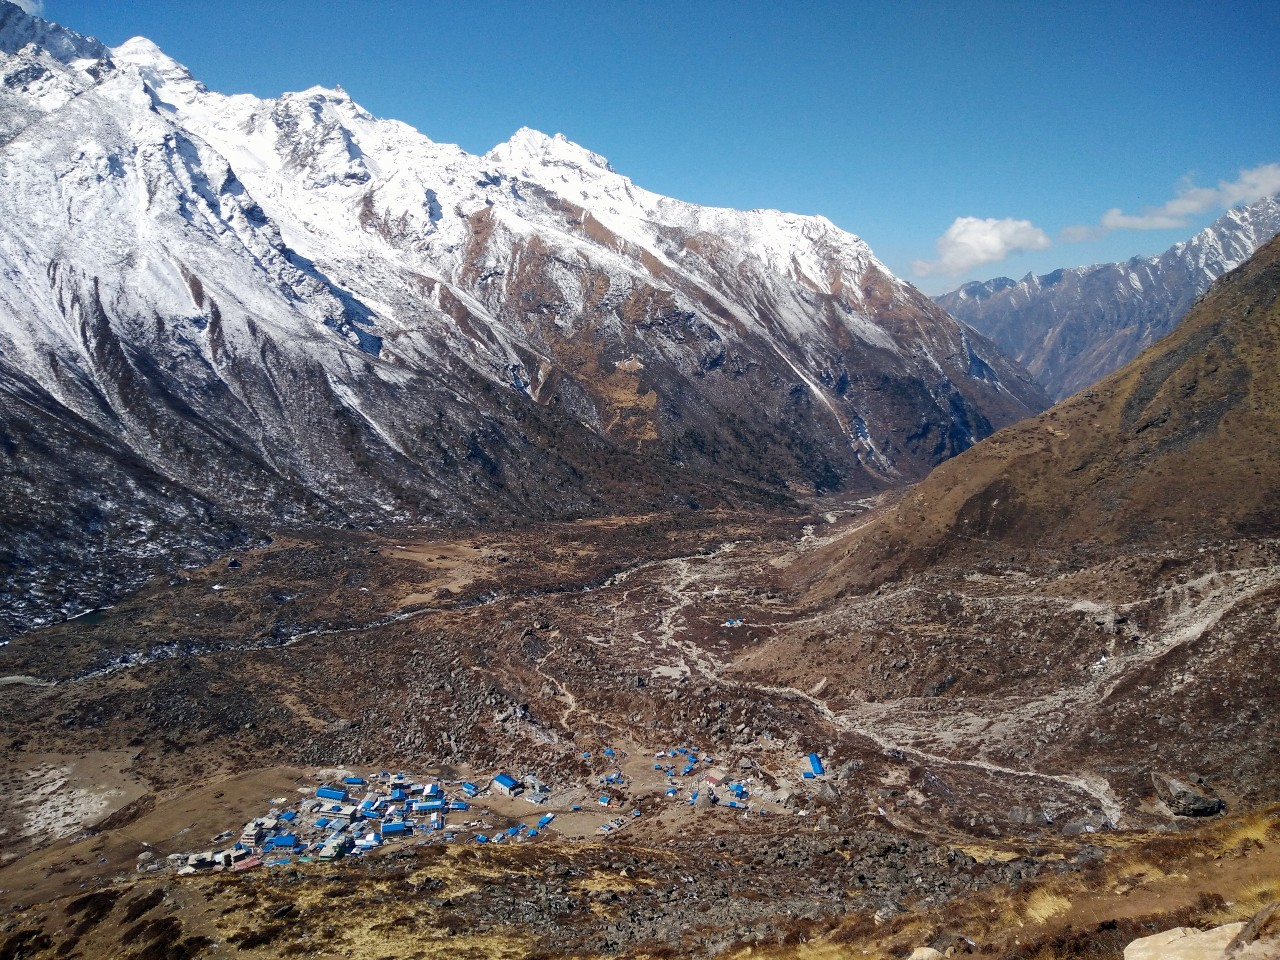 Langtang, Gosaikunda attract hordes of domestic tourists with COVID-19 receding